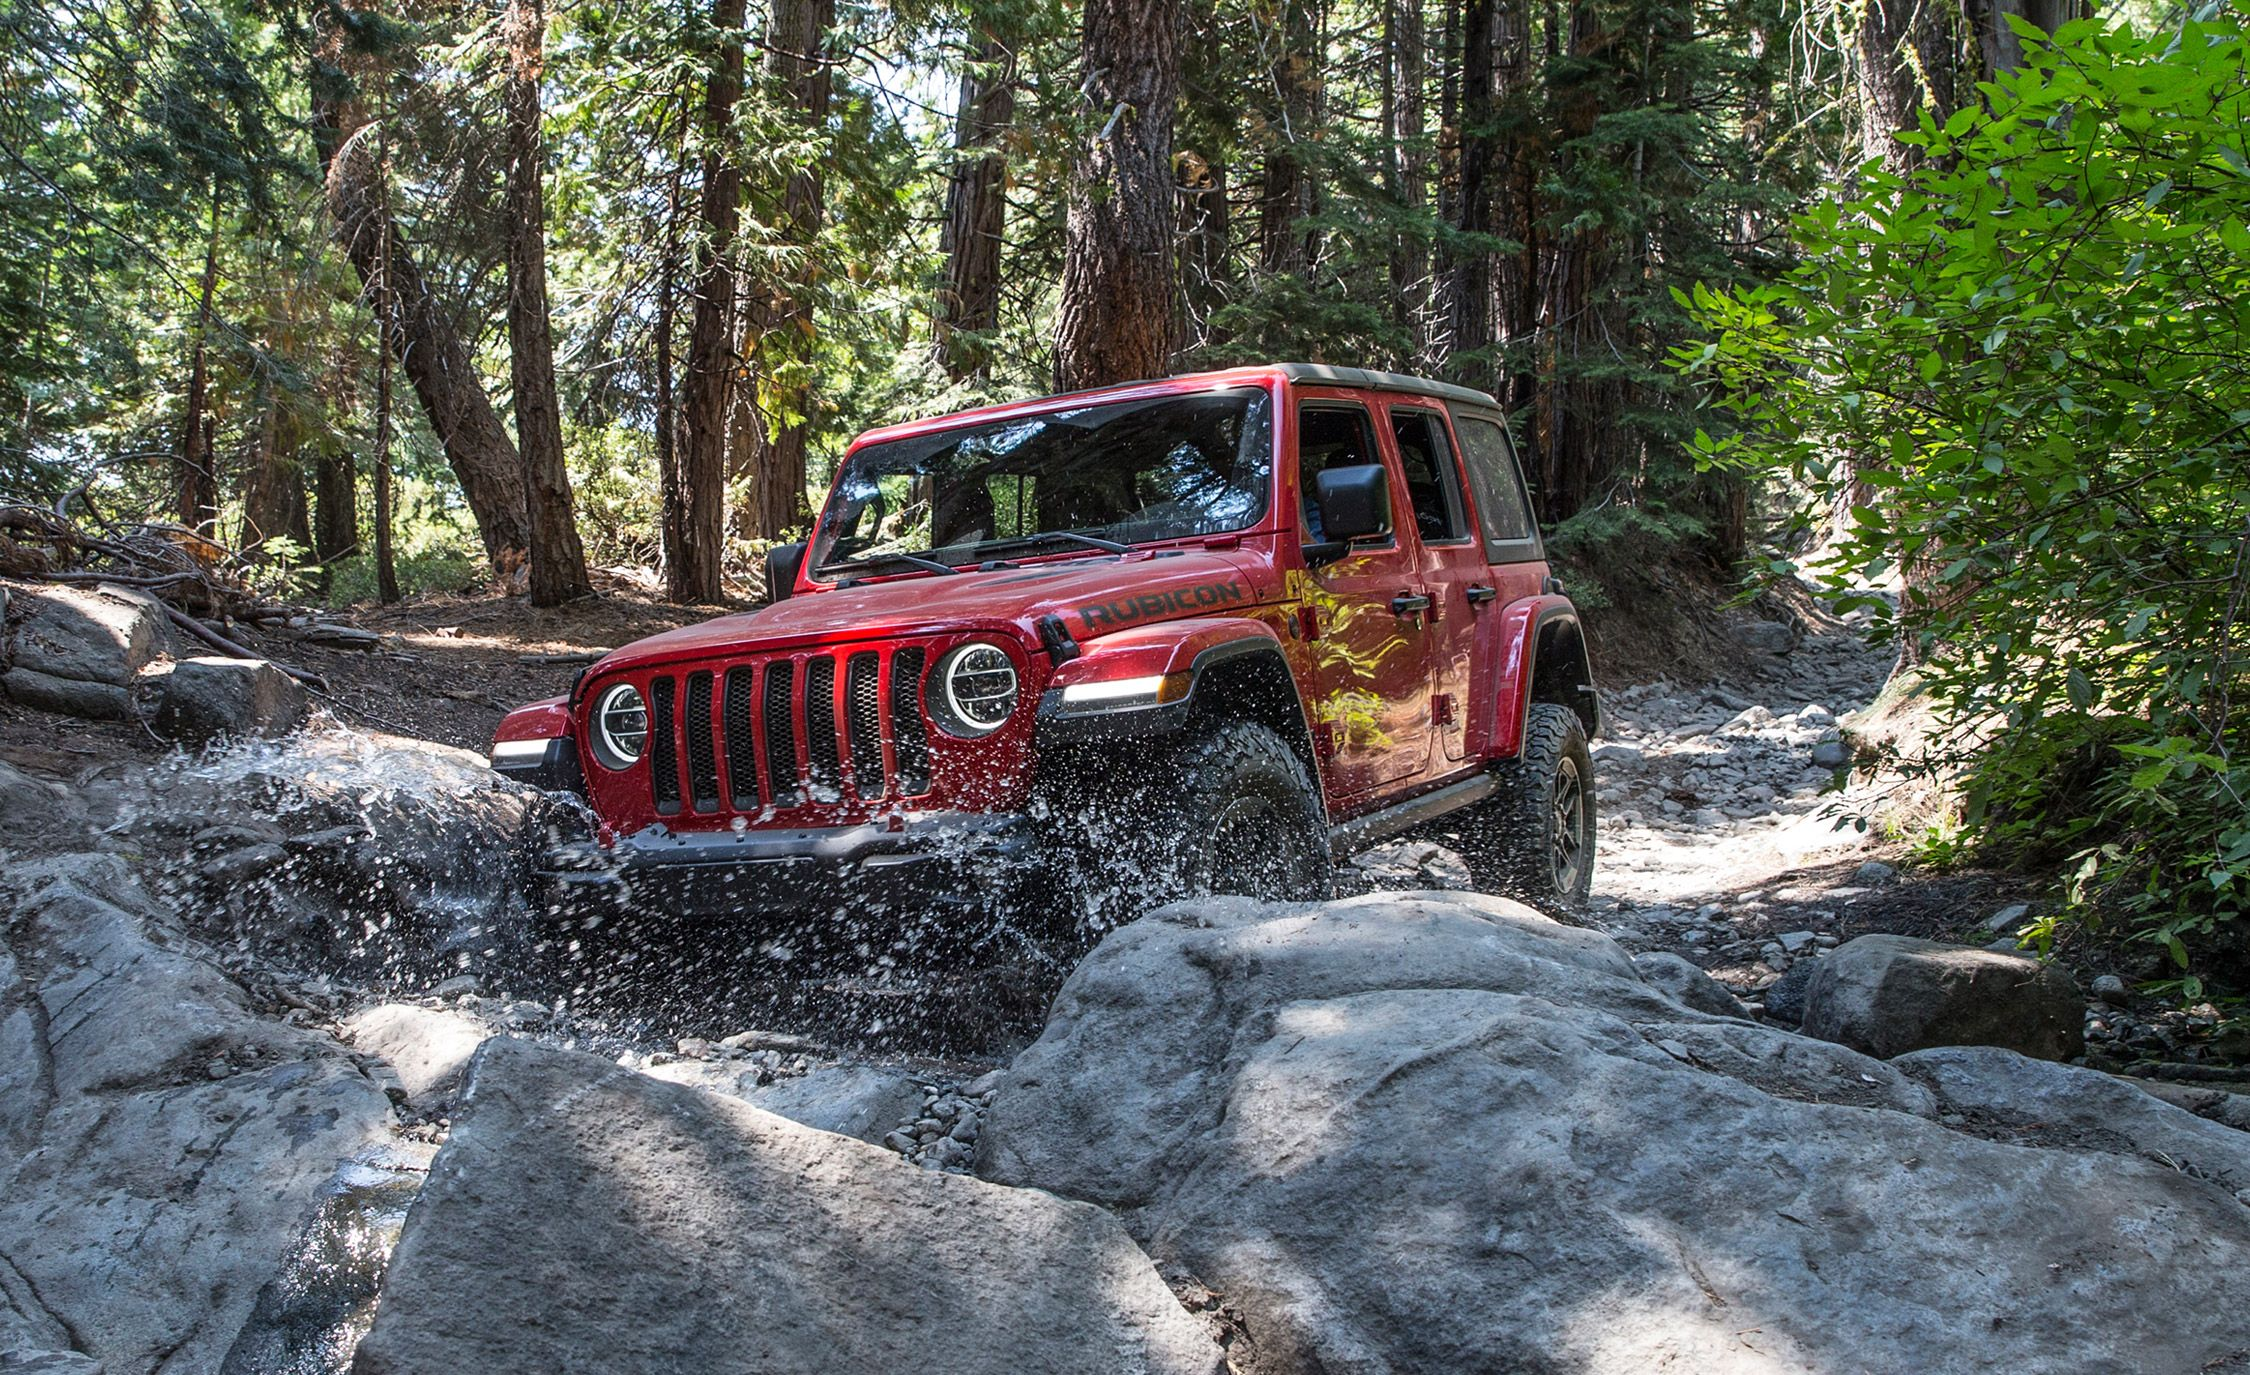 New Jeep Wrangler On Rubicon Trail Jl Wrangler Rock Crawling